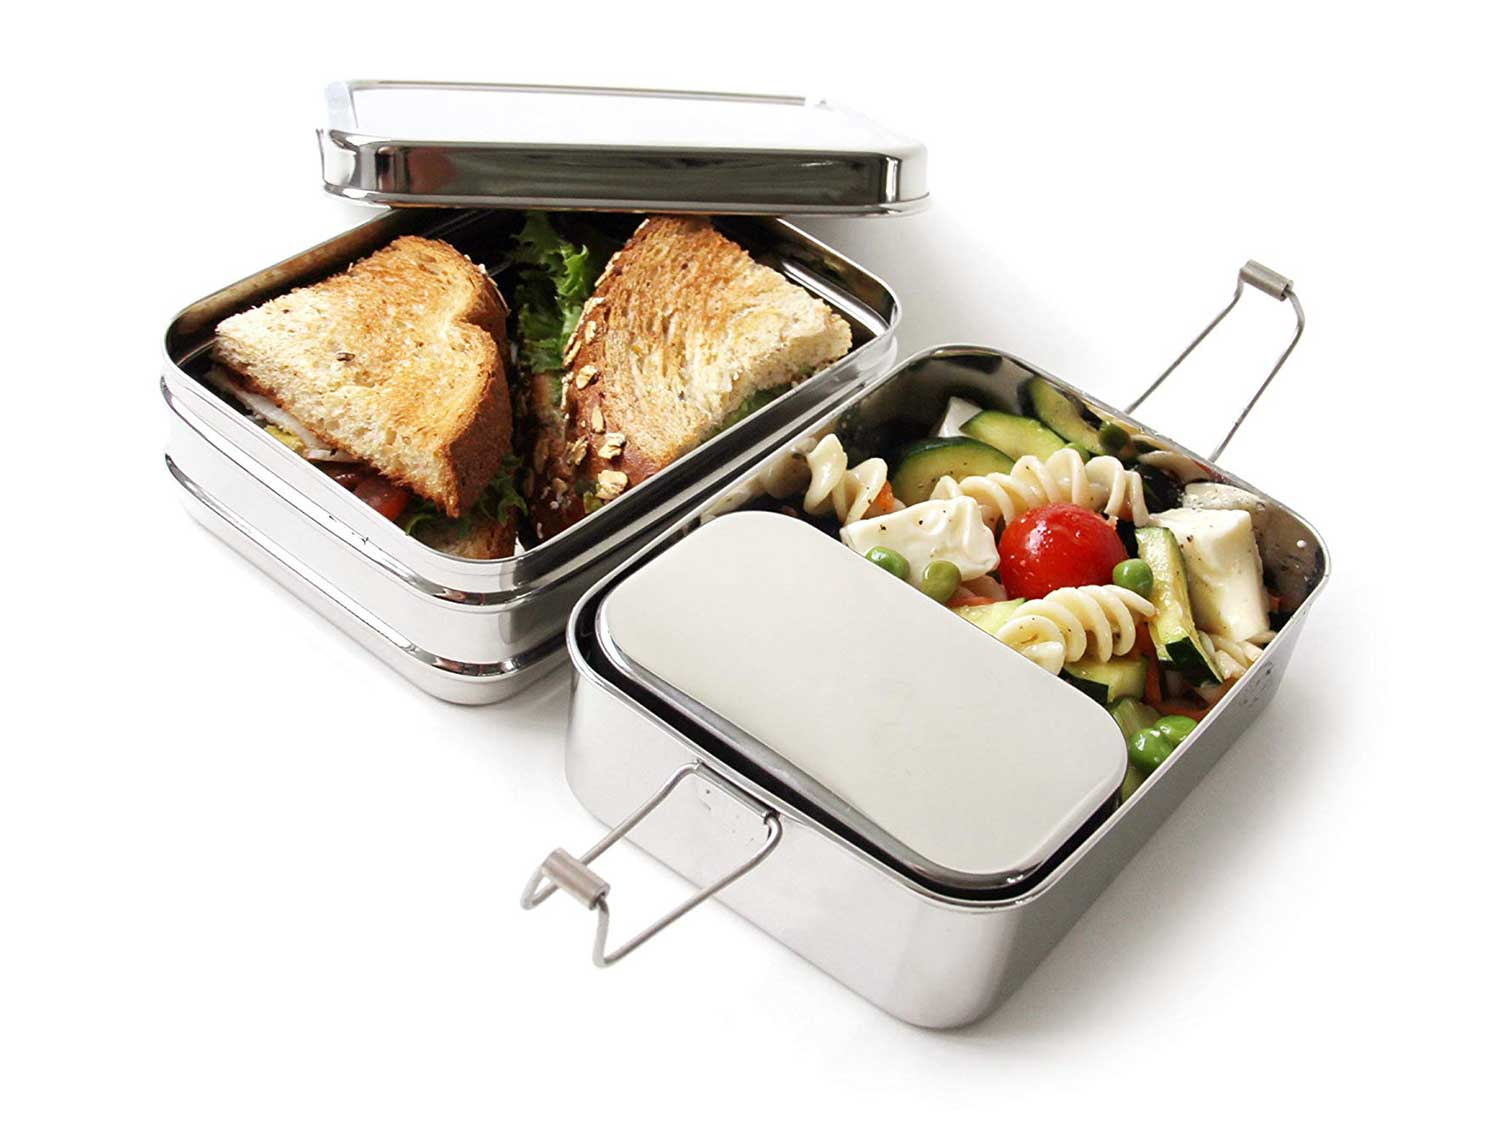 httpspush.saveur.comsitessaveur.comfilesimages201909ecolunchbox-stainless-food-canister-lunch-box.jpg